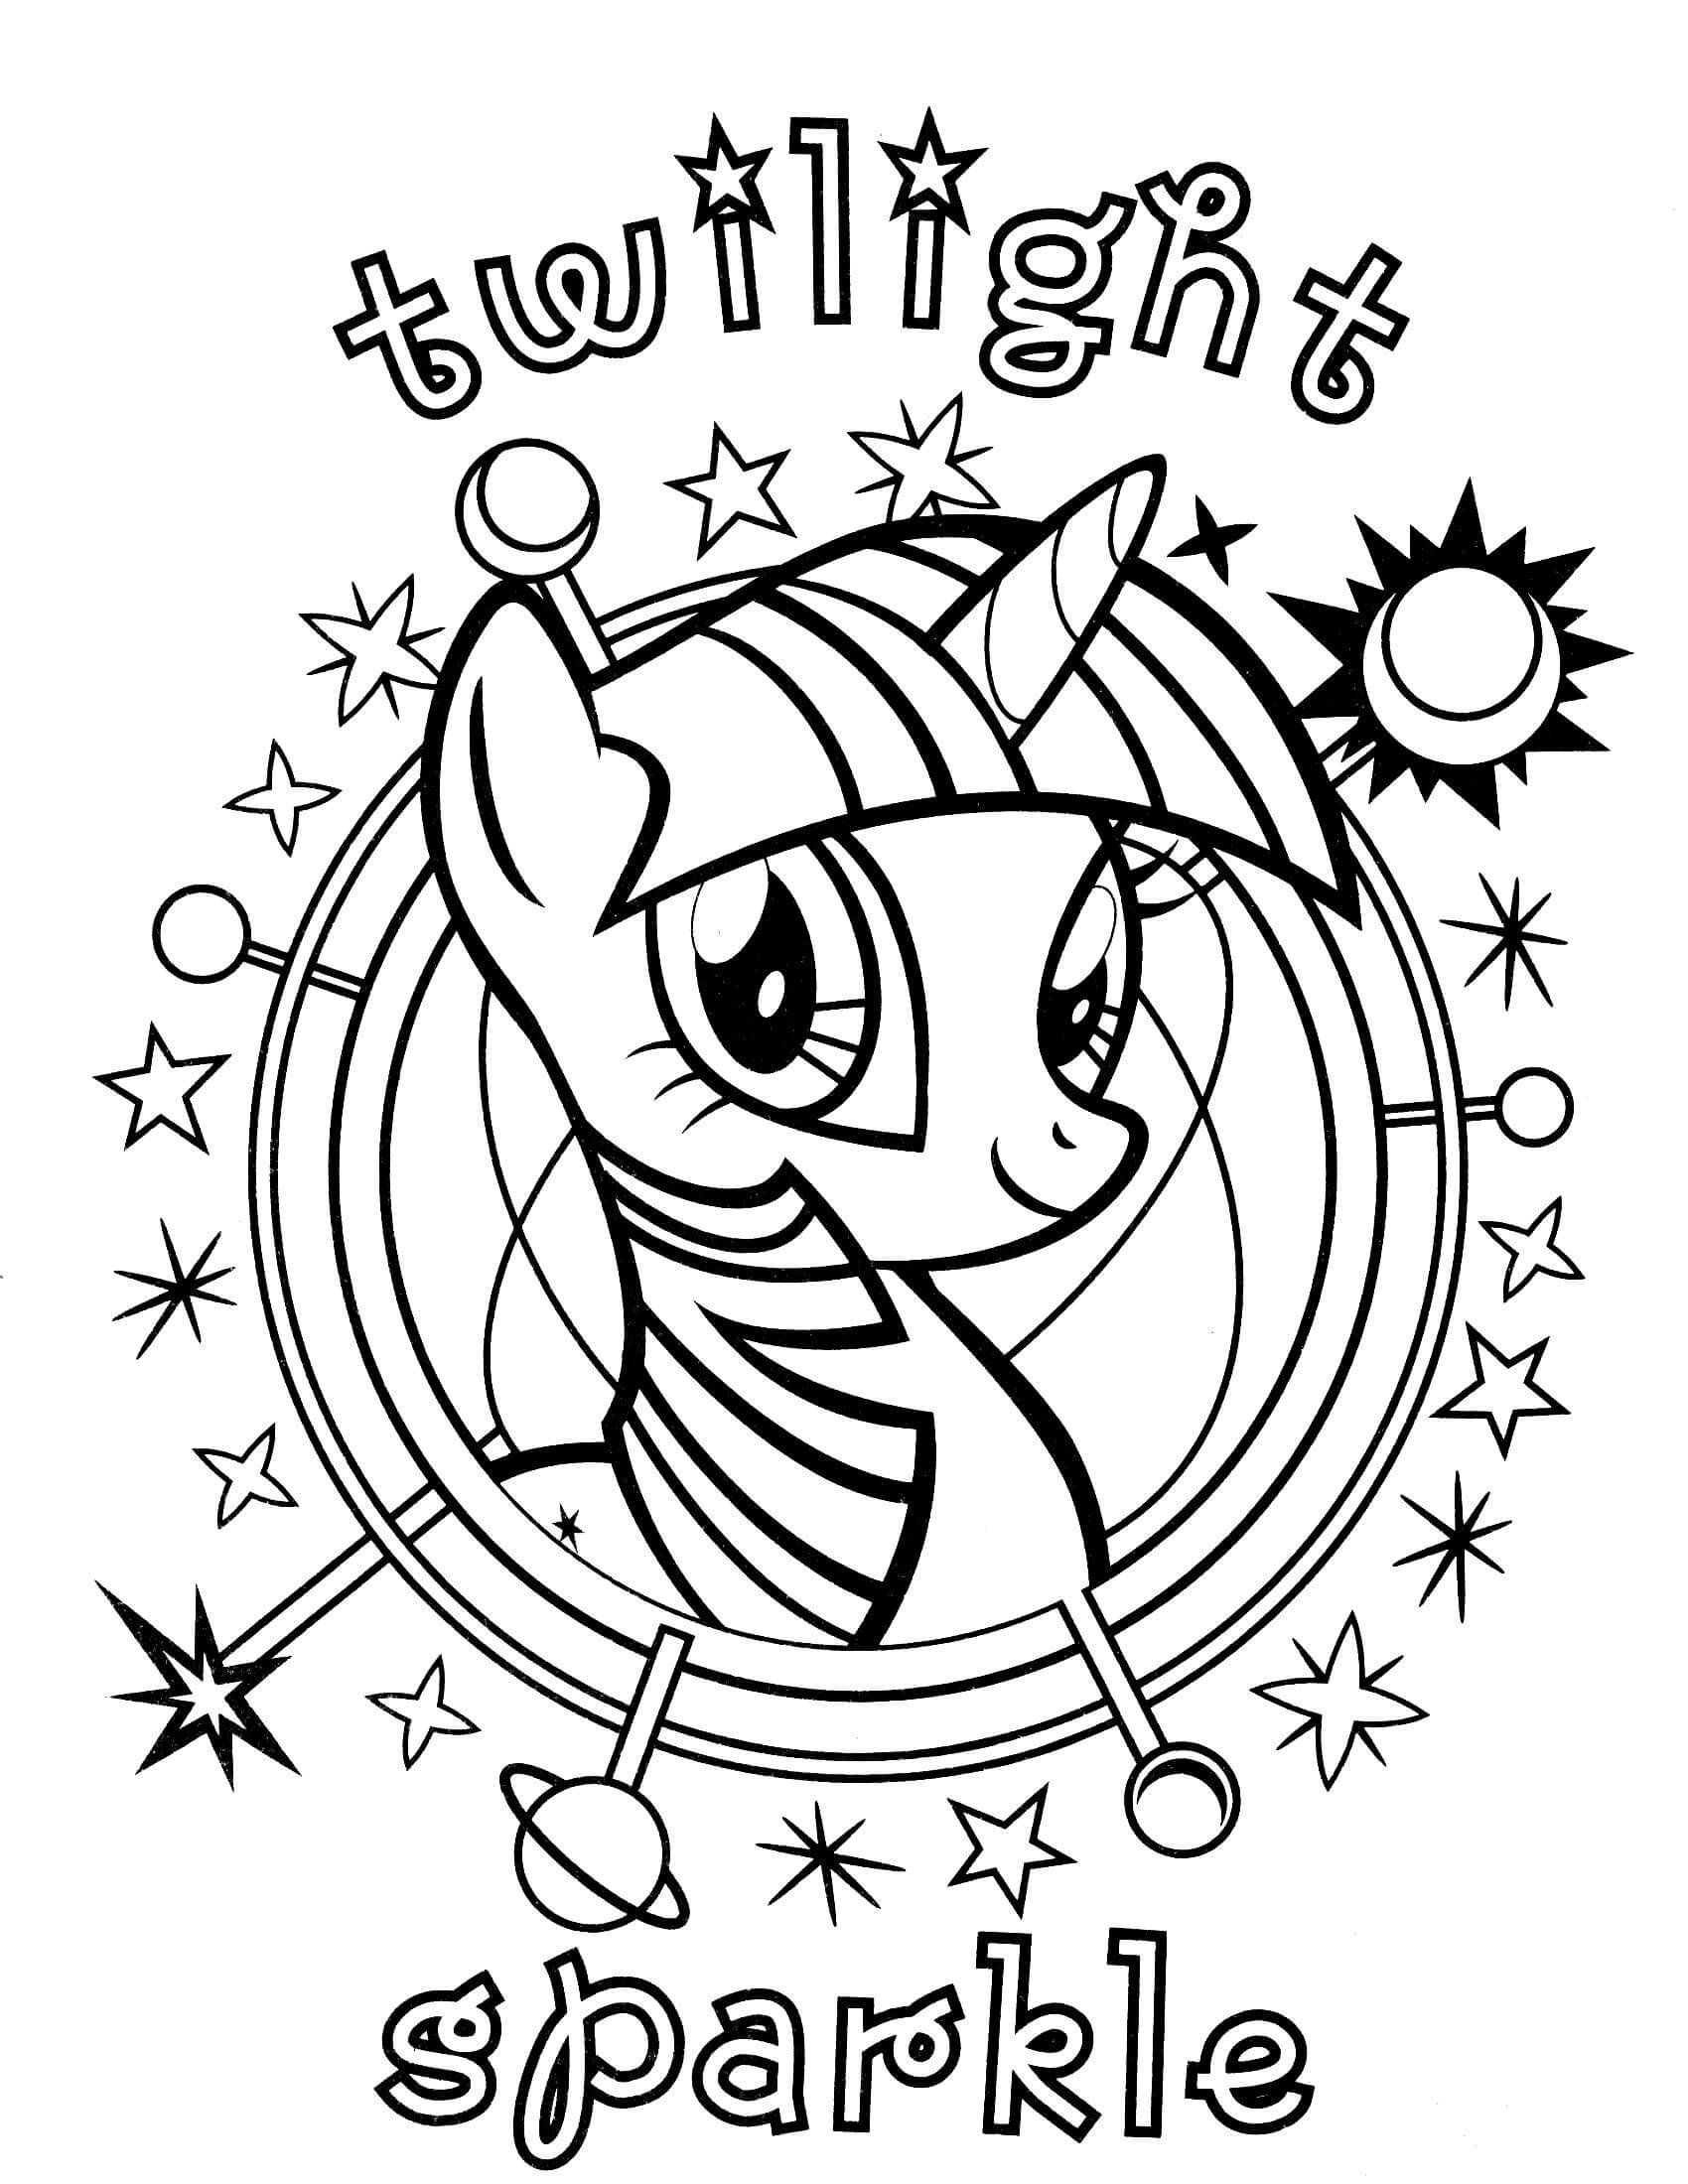 My Little Pony Coloring Book Games Coloring Pages Fabulous My Little Pony Coloring Booknline My Little Pony Coloring Coloring Books Fathers Day Coloring Page